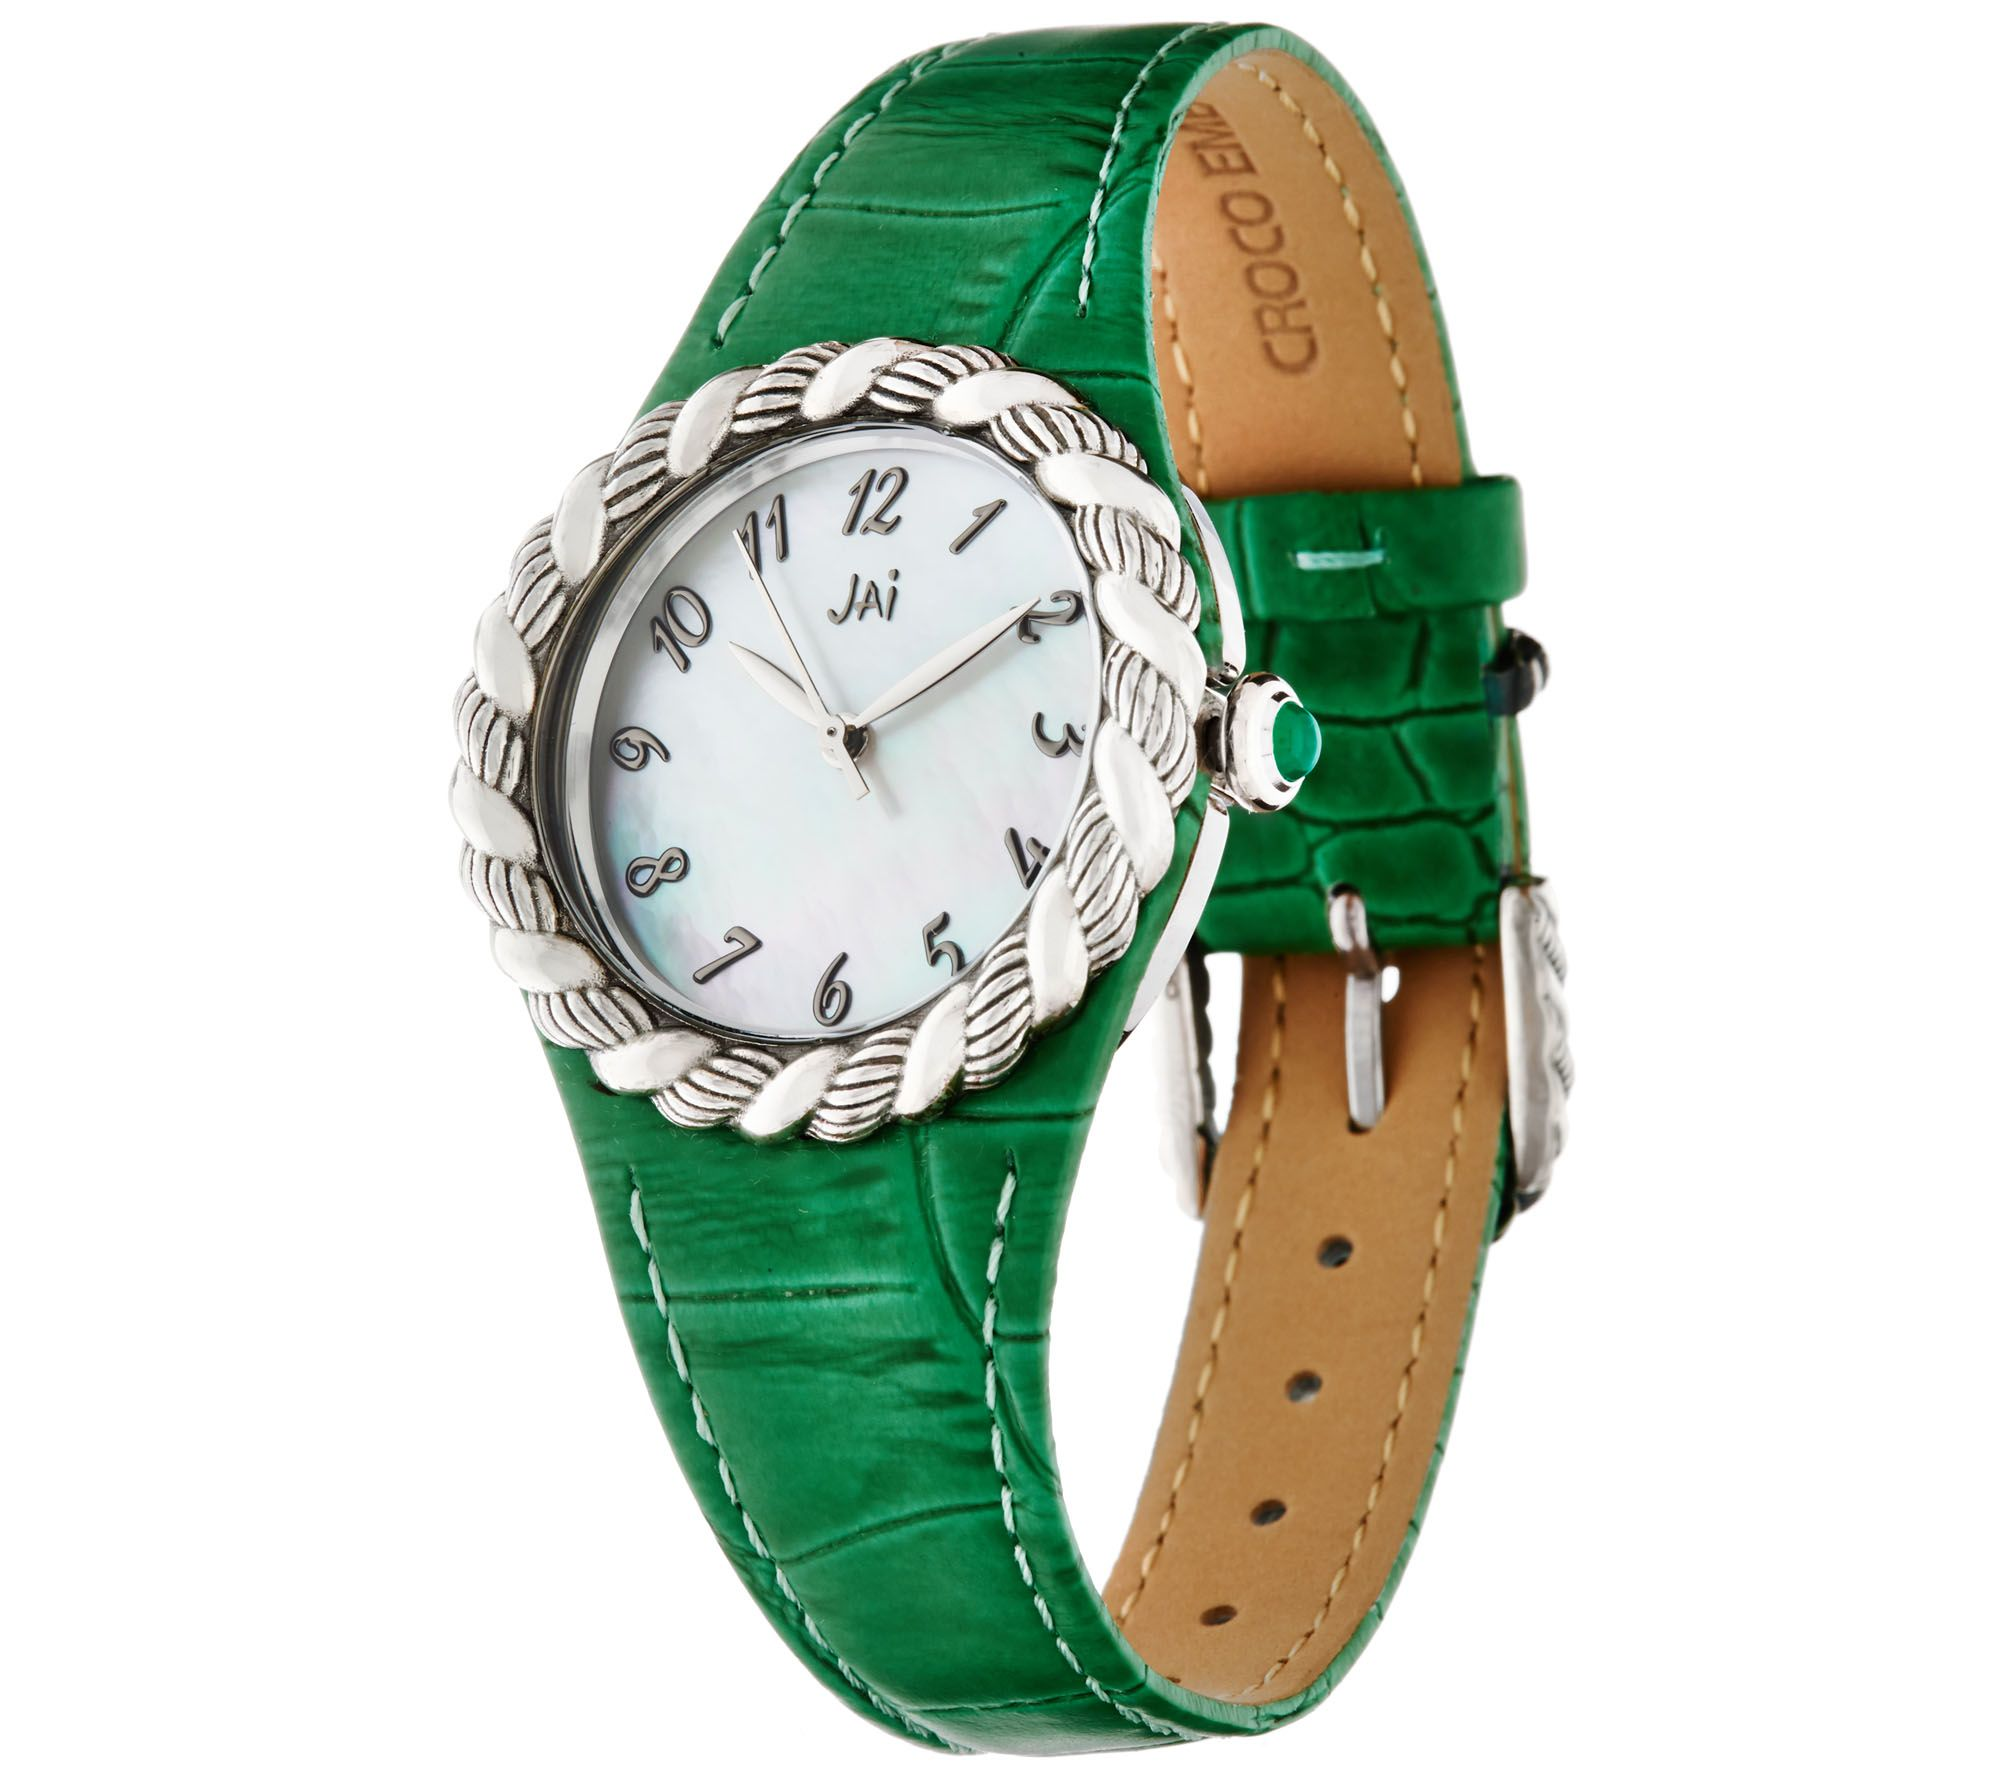 JAI Stainless Steel Croco Texture Leather & Sukhothai Watch